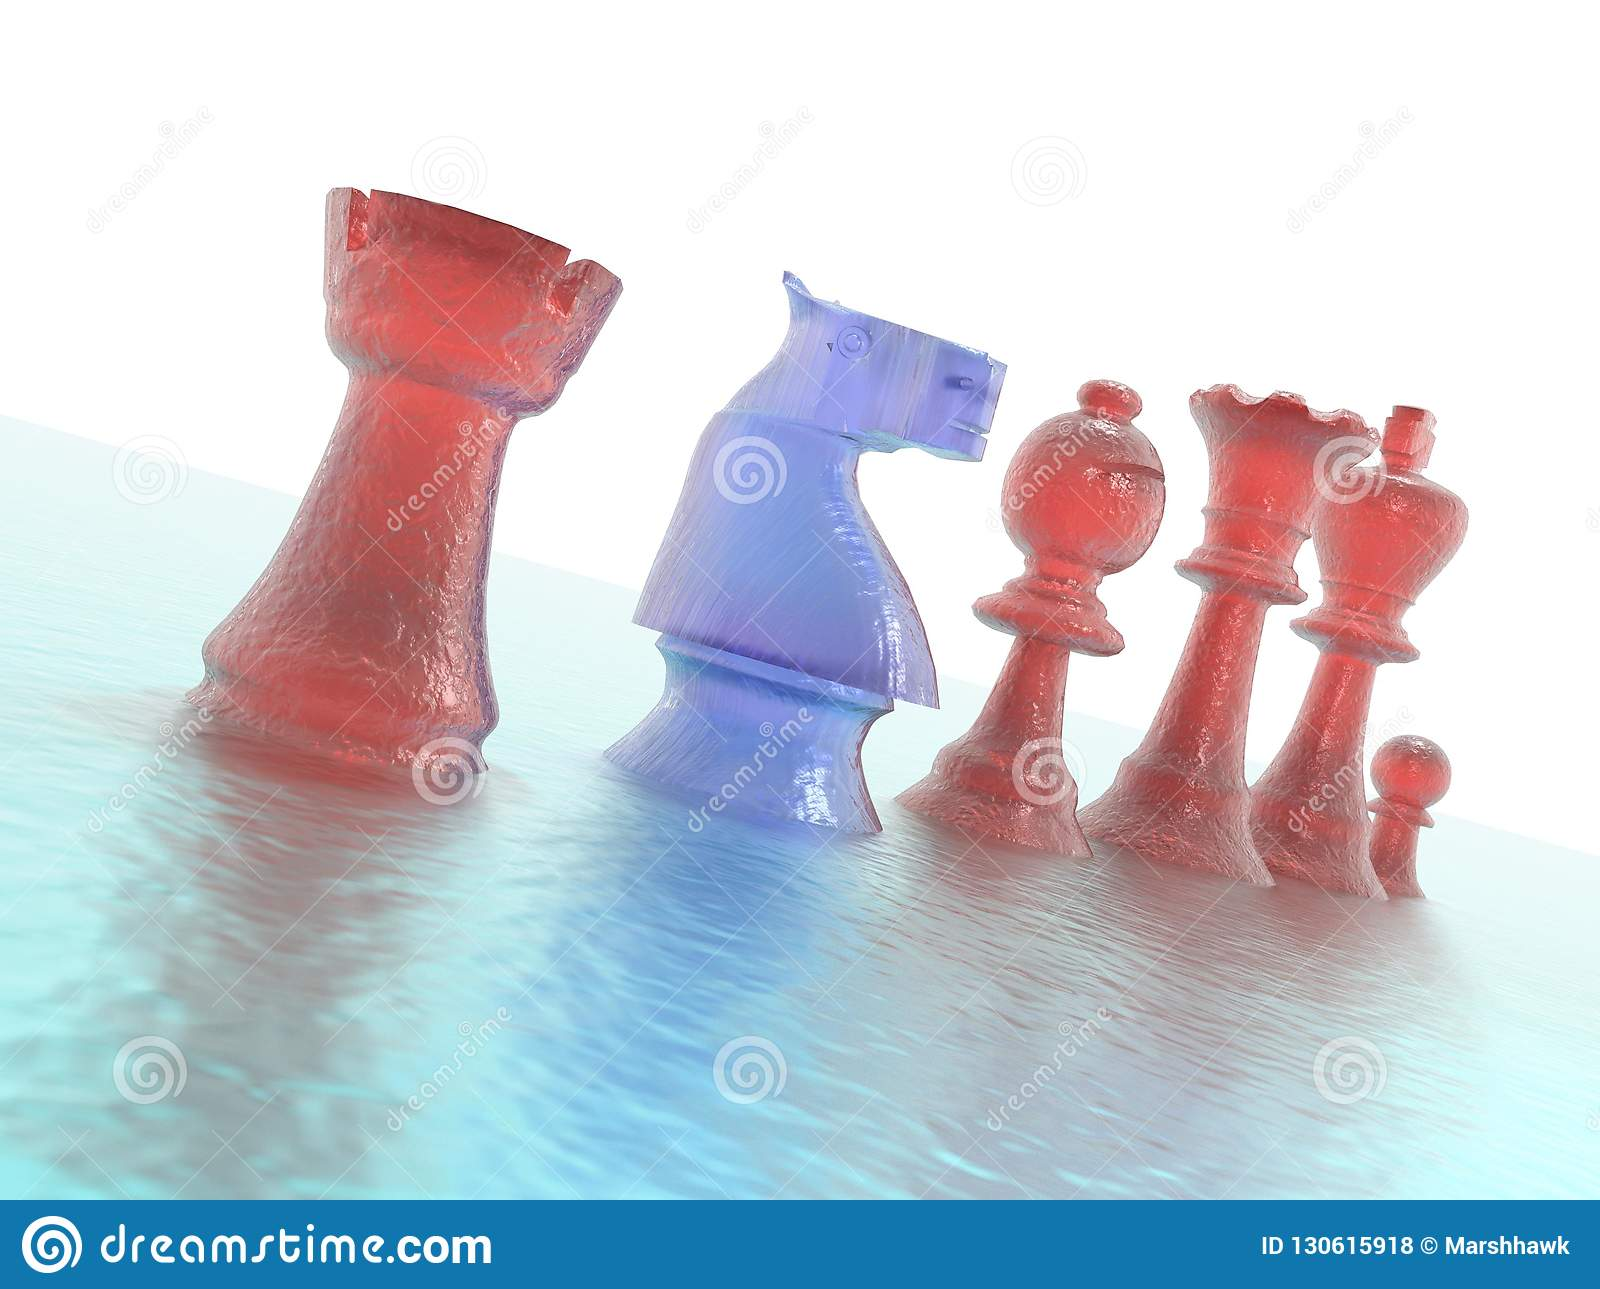 Porn King Castle chess pieces closeup stock photo. image of knight, rook